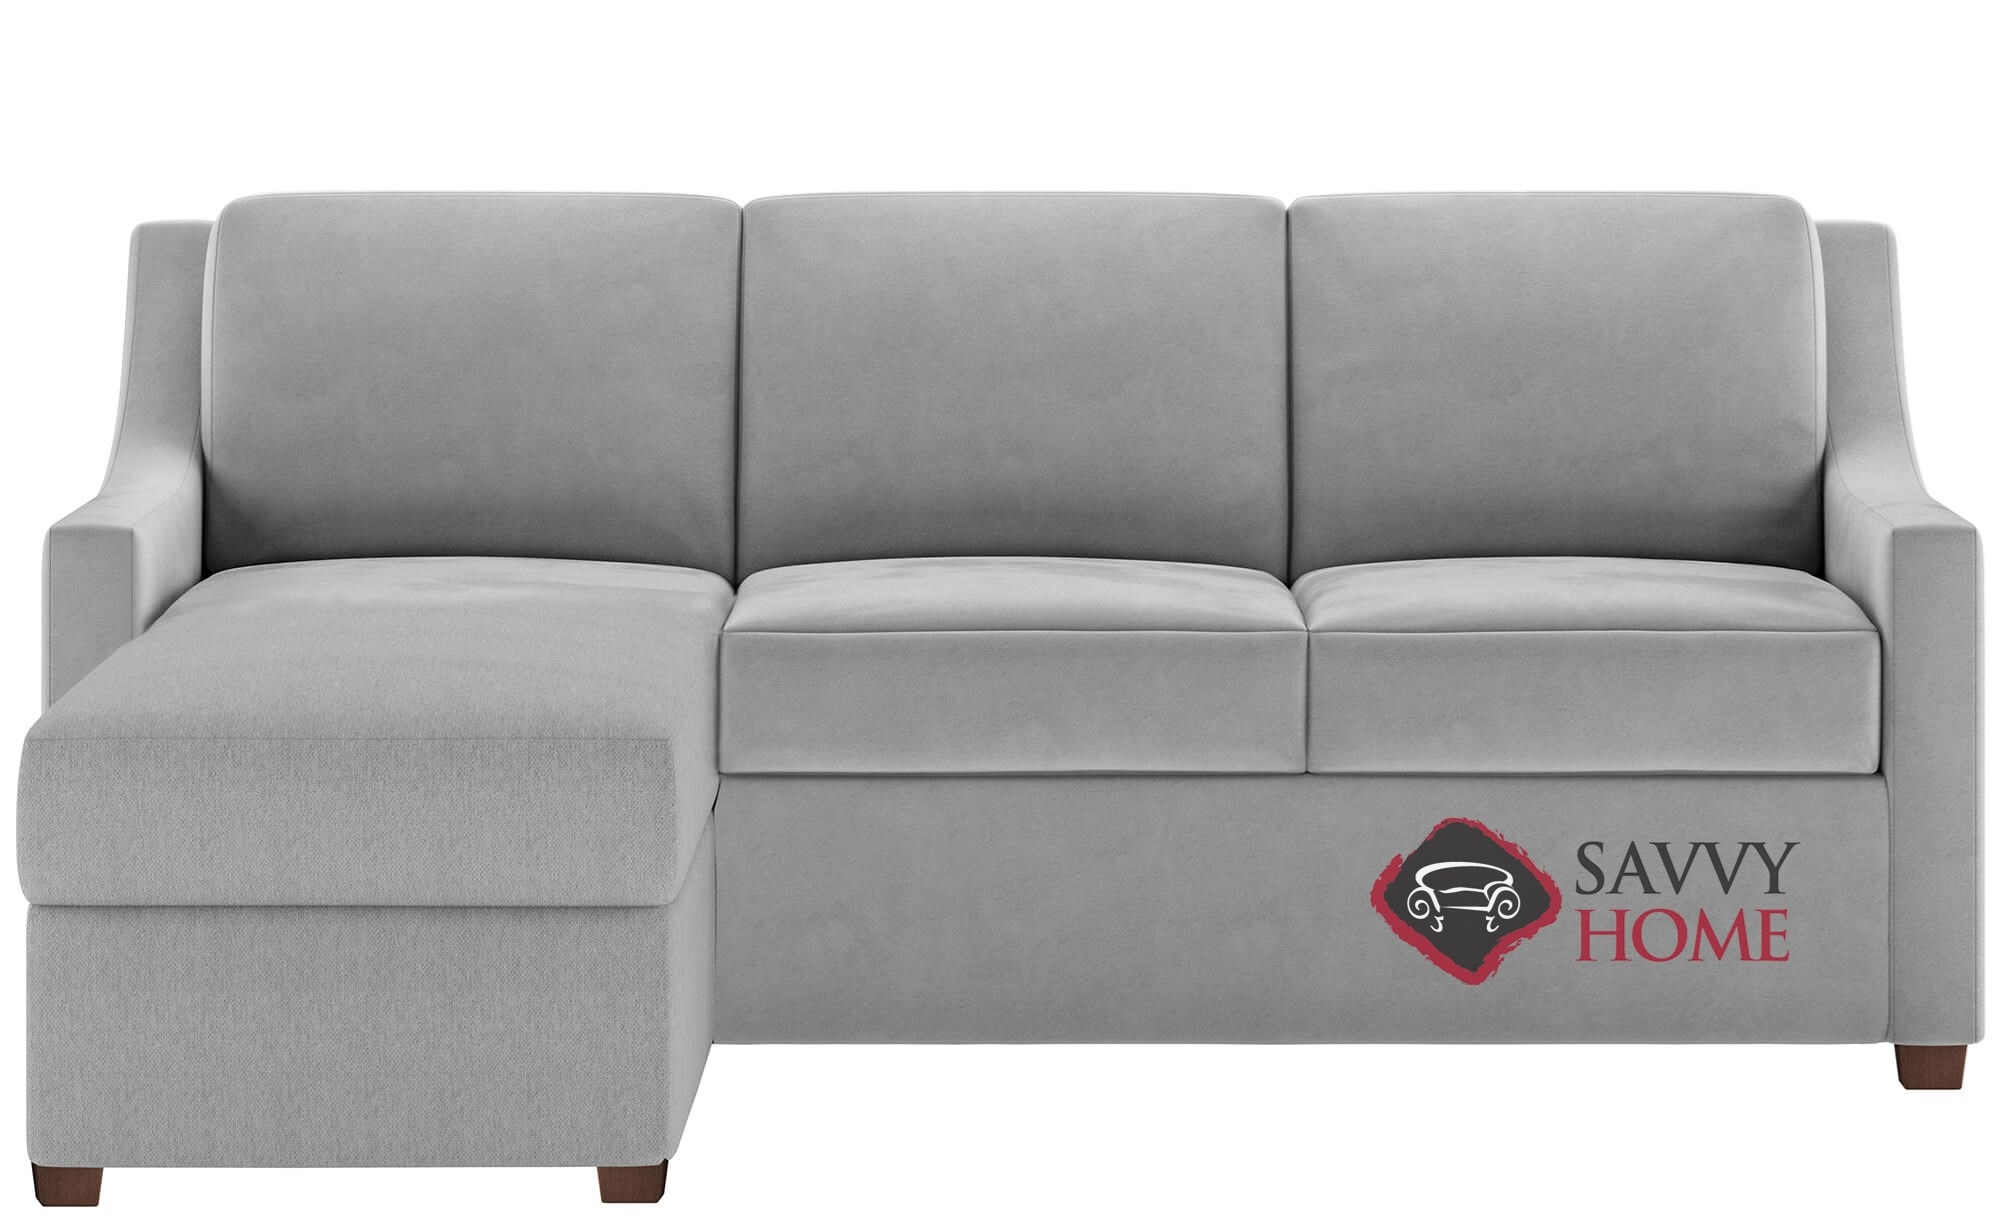 perry low leg queen plus with chaise sectional leather comfort sleeper by american leather generation viii